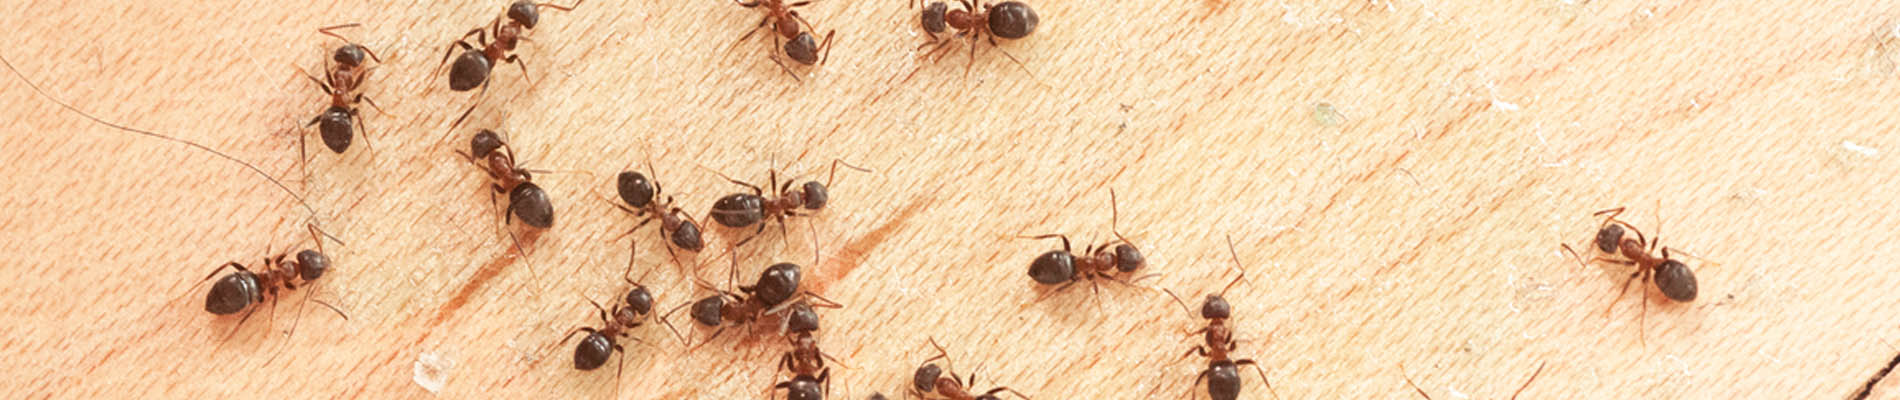 Ant treatments